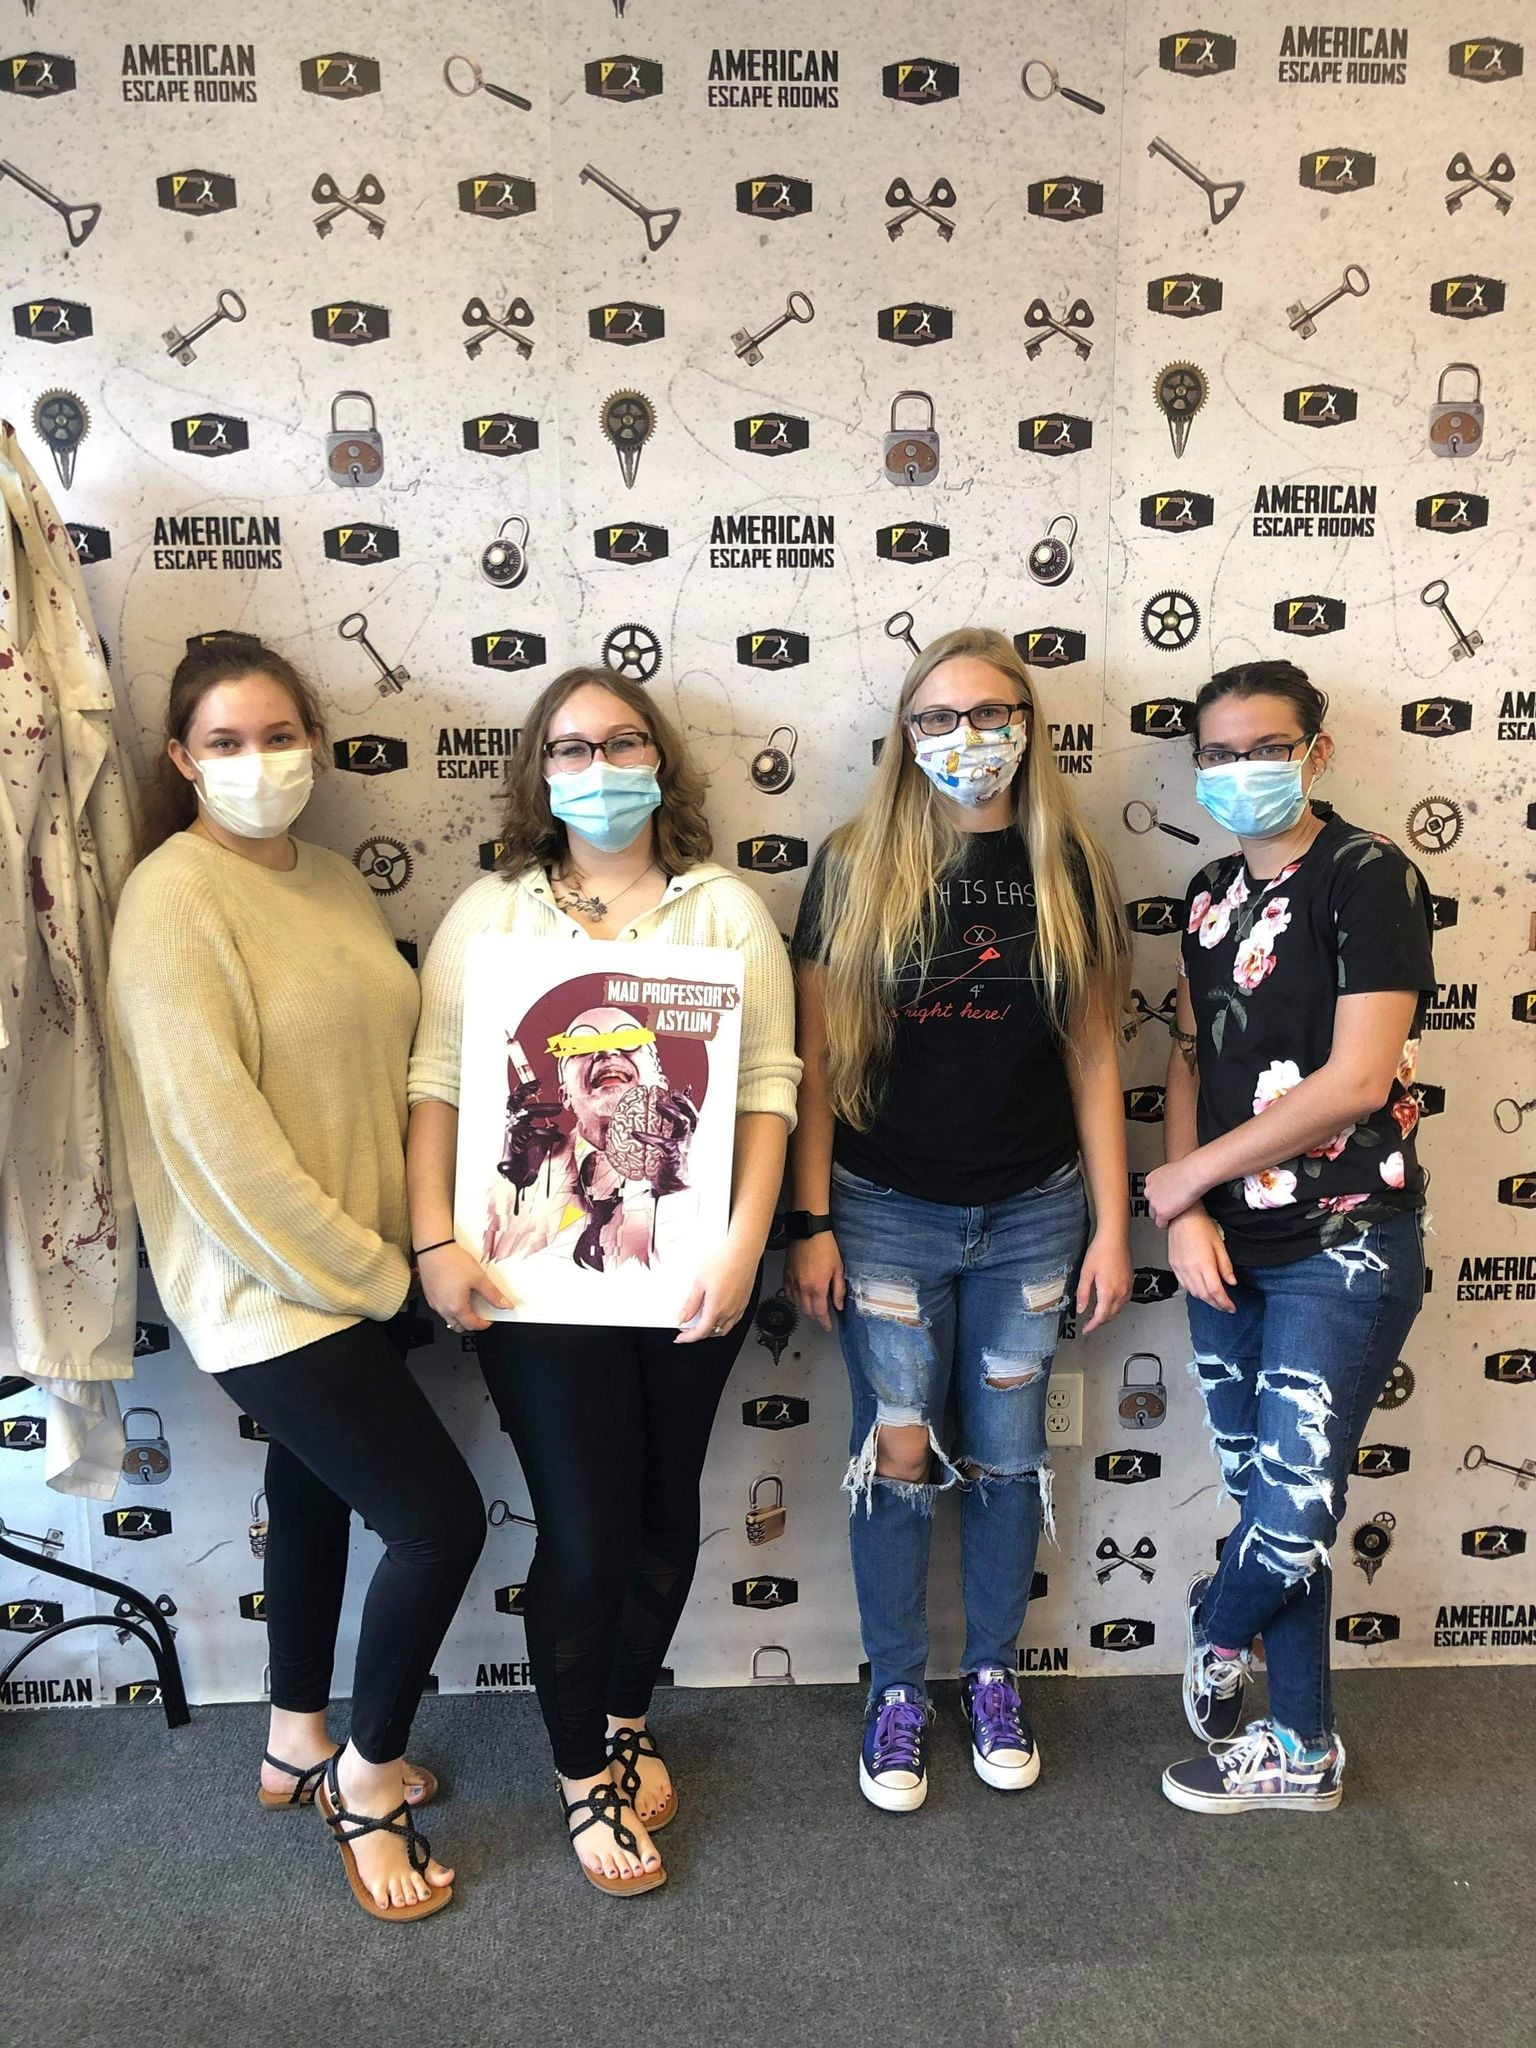 Team Winners played the Mad Professor's Asylum - Tampa and finished the game with 2 minutes 53 seconds left. Congratulations! Well done!